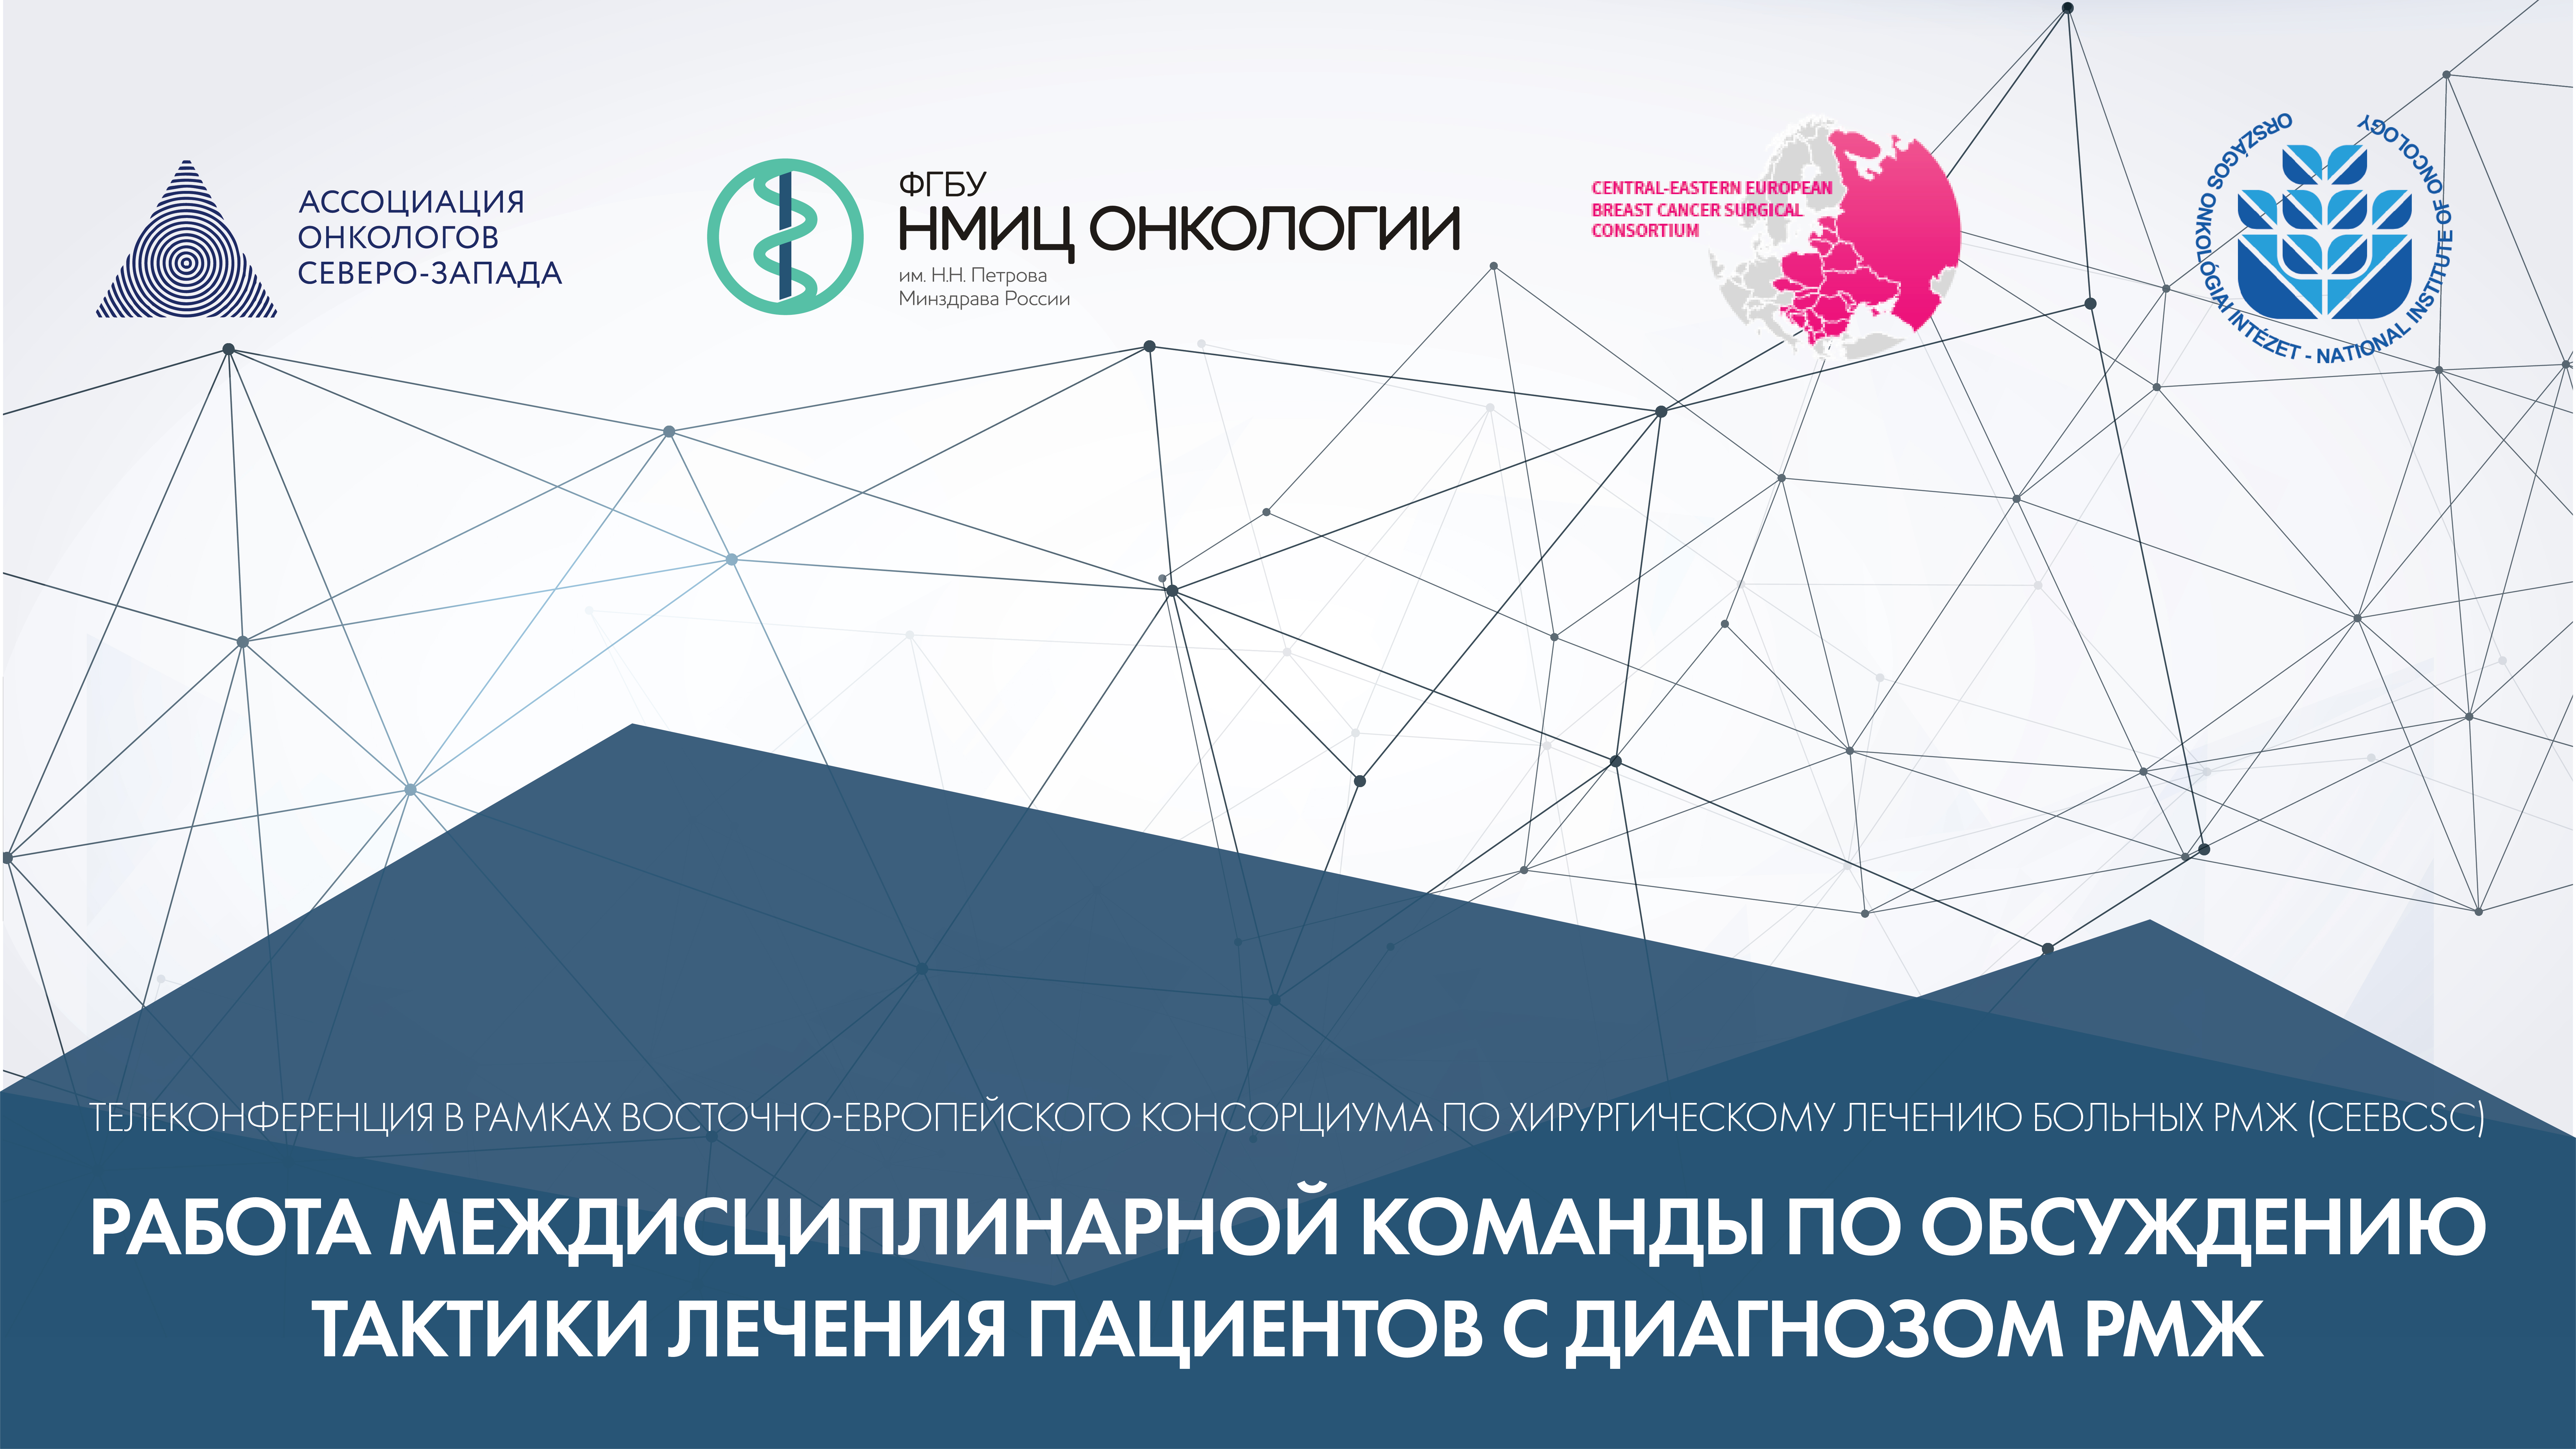 "Programme of the teleconference within the Central-Eastern European Breast Cancer Surgical Consortium (CEEBCSС) ""Multidisciplinary team: strategies and tactics in the treatment of breast cancer patients"""